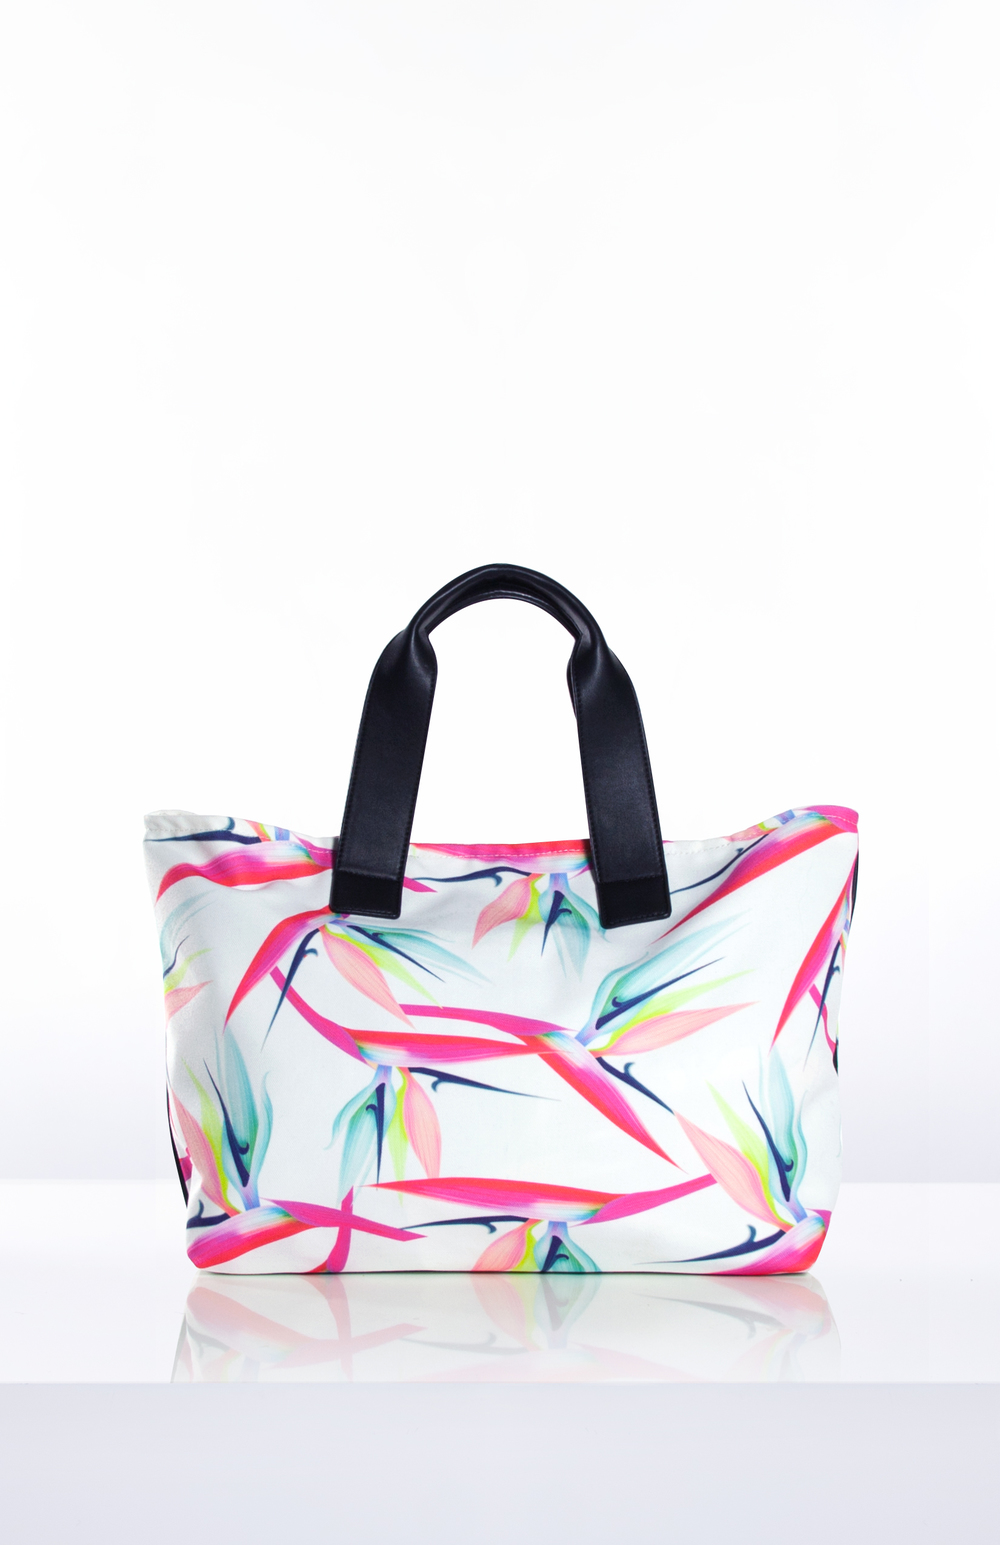 Georgette Weekender/Beach Tote (Custom Printed Canvas Body)